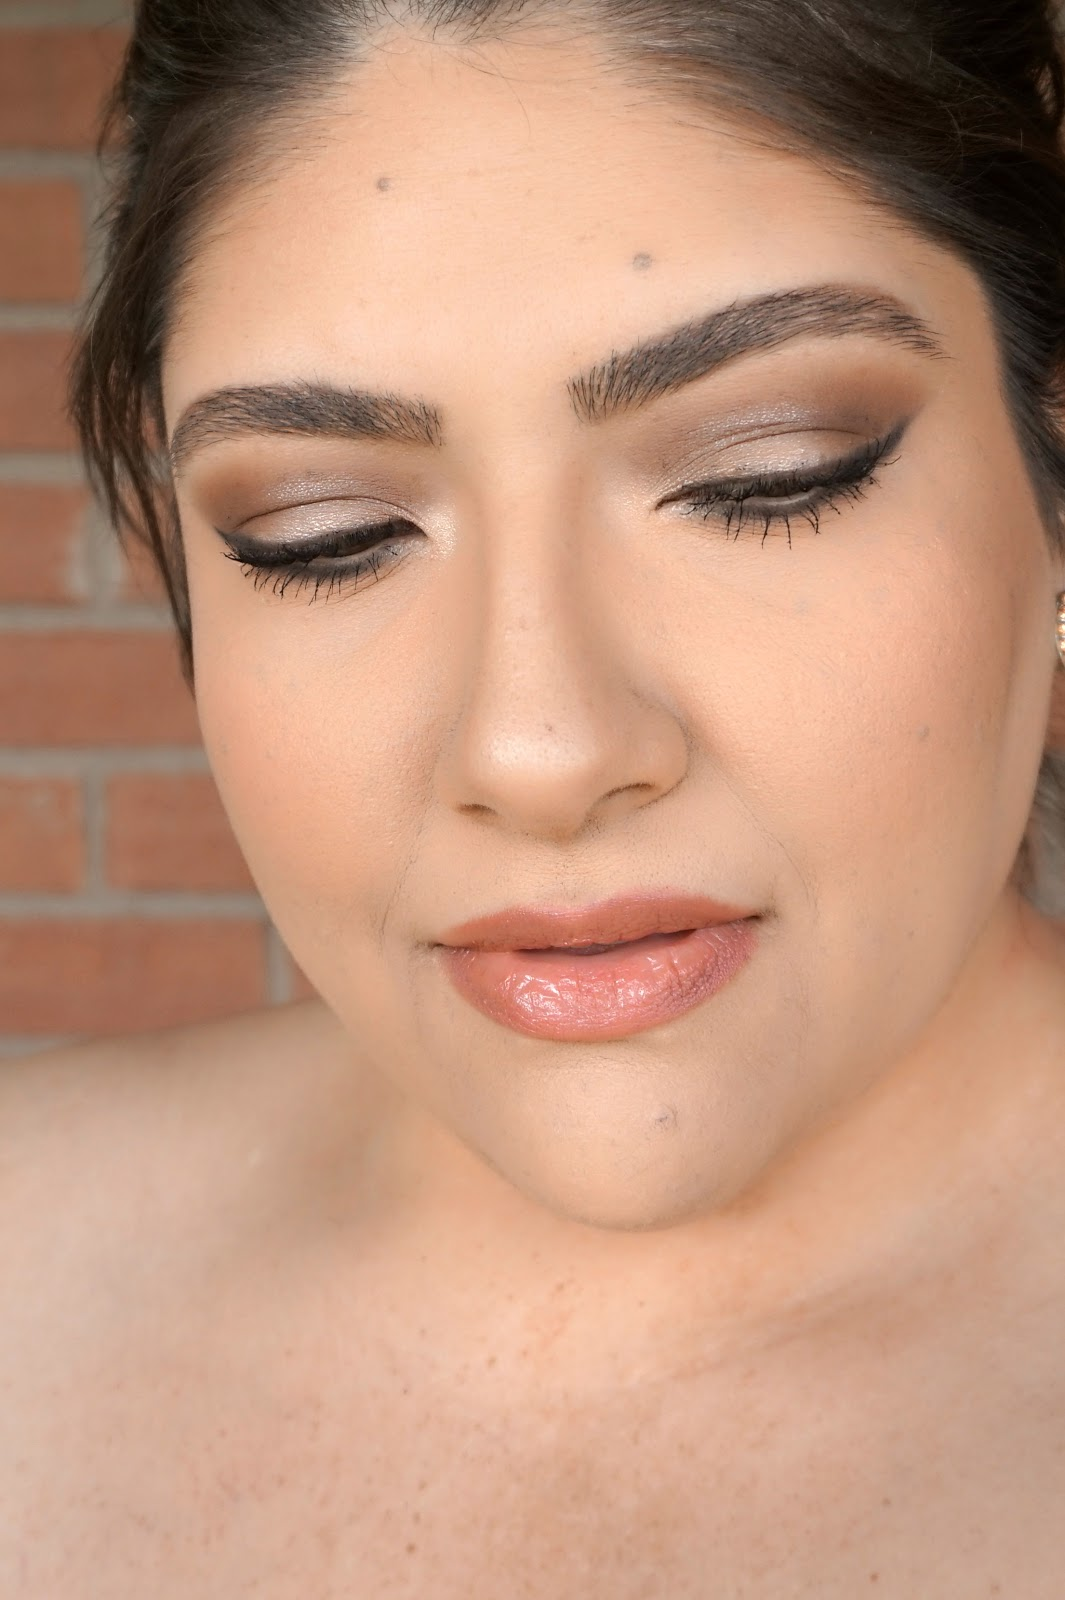 bridal makeup classic beauty simple artis think